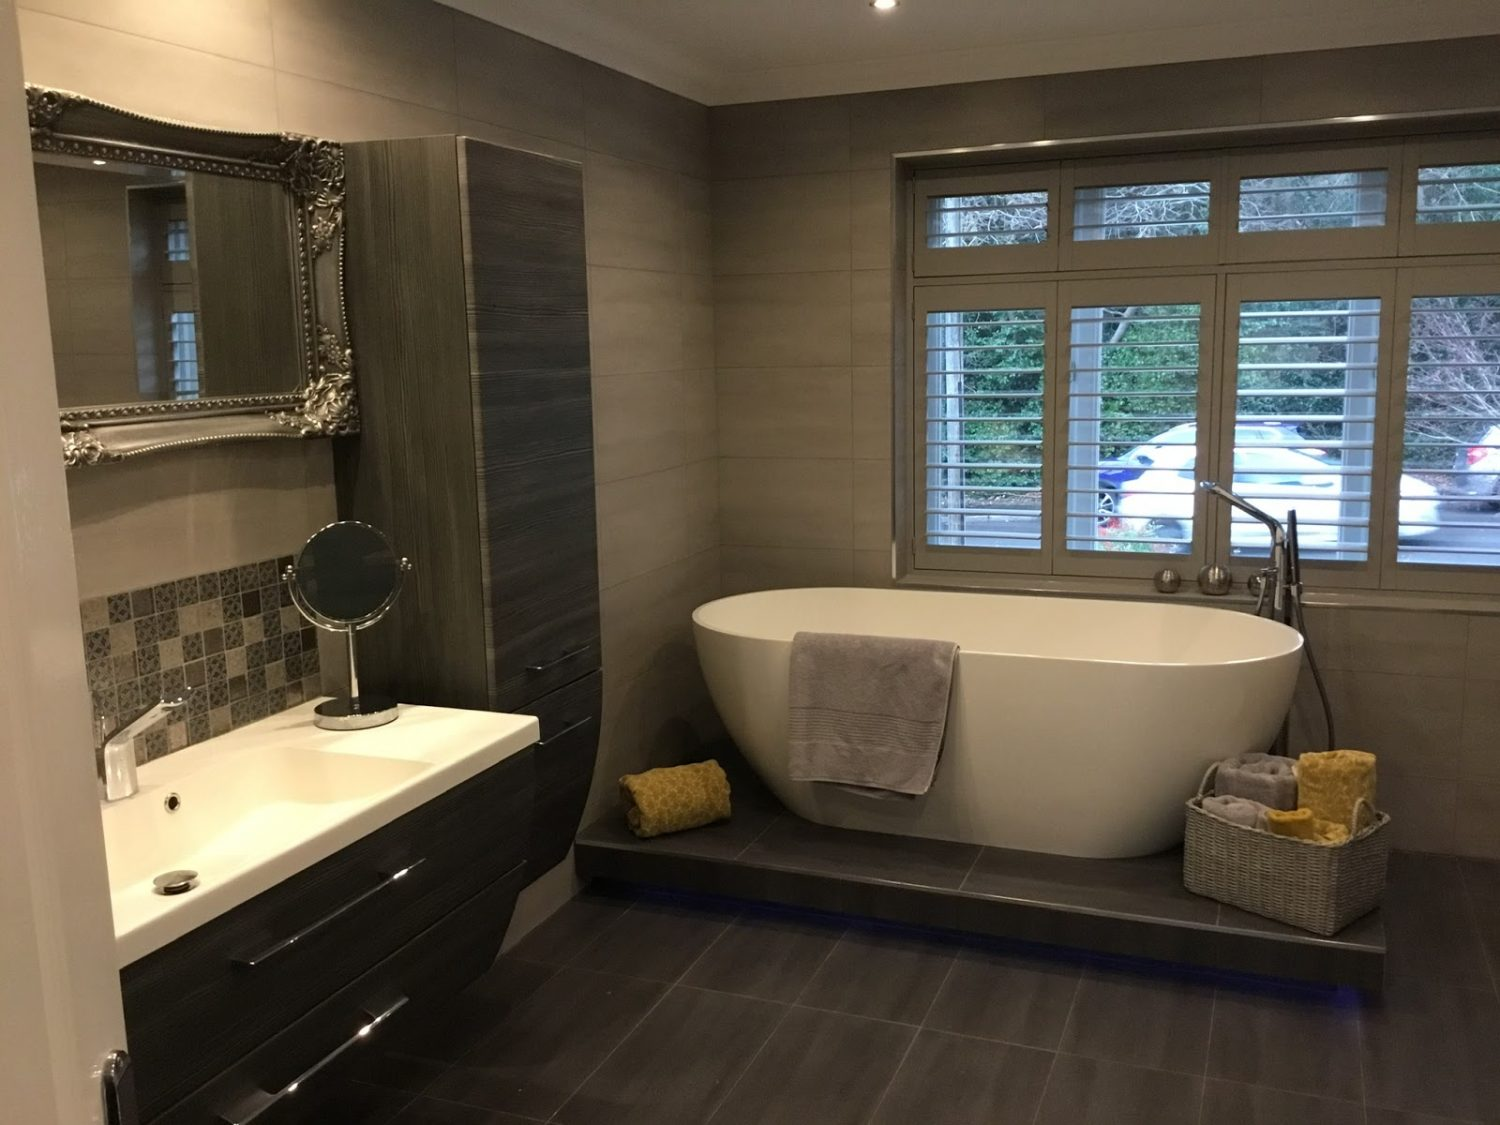 Our Home Renovation at No.14 – Our Ensuite